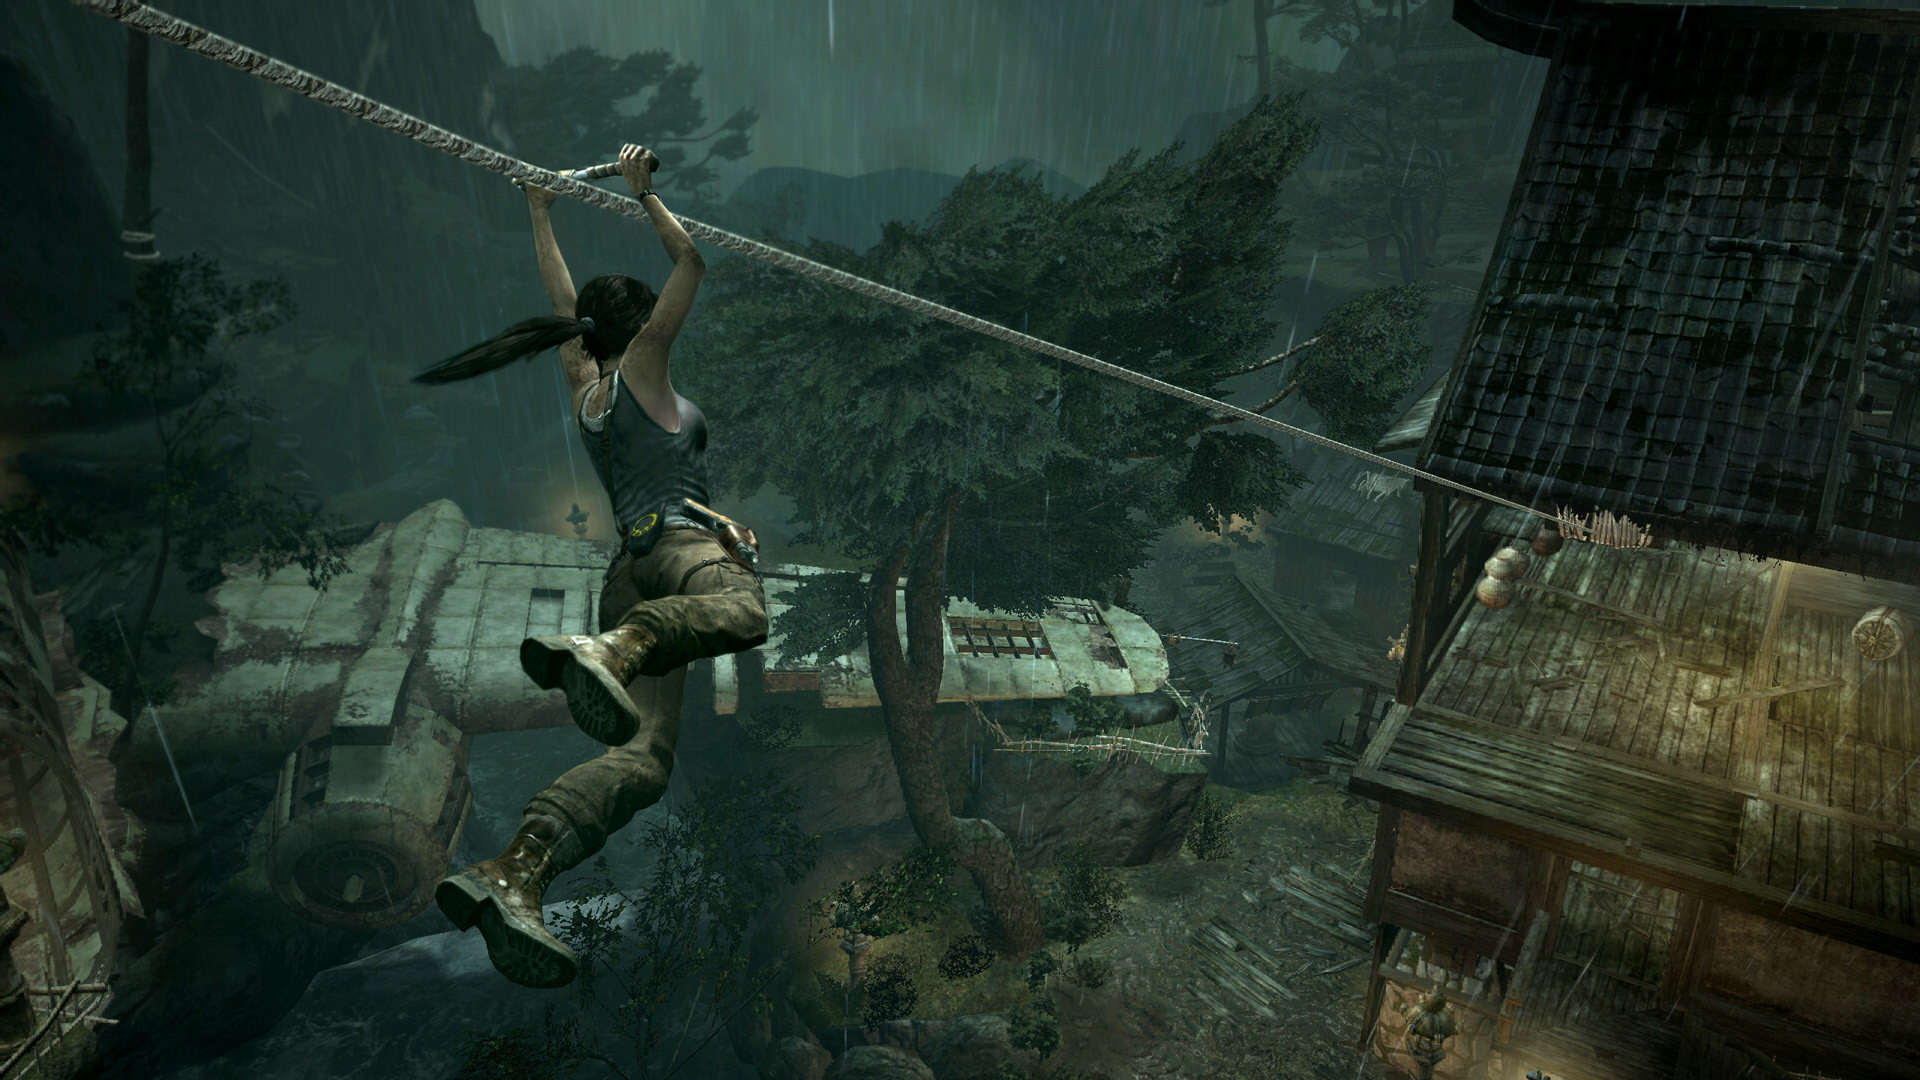 Tomb Raider Actress Alicia Vikander Speaks Out About Her New Role tomb raider 2013 screen 11